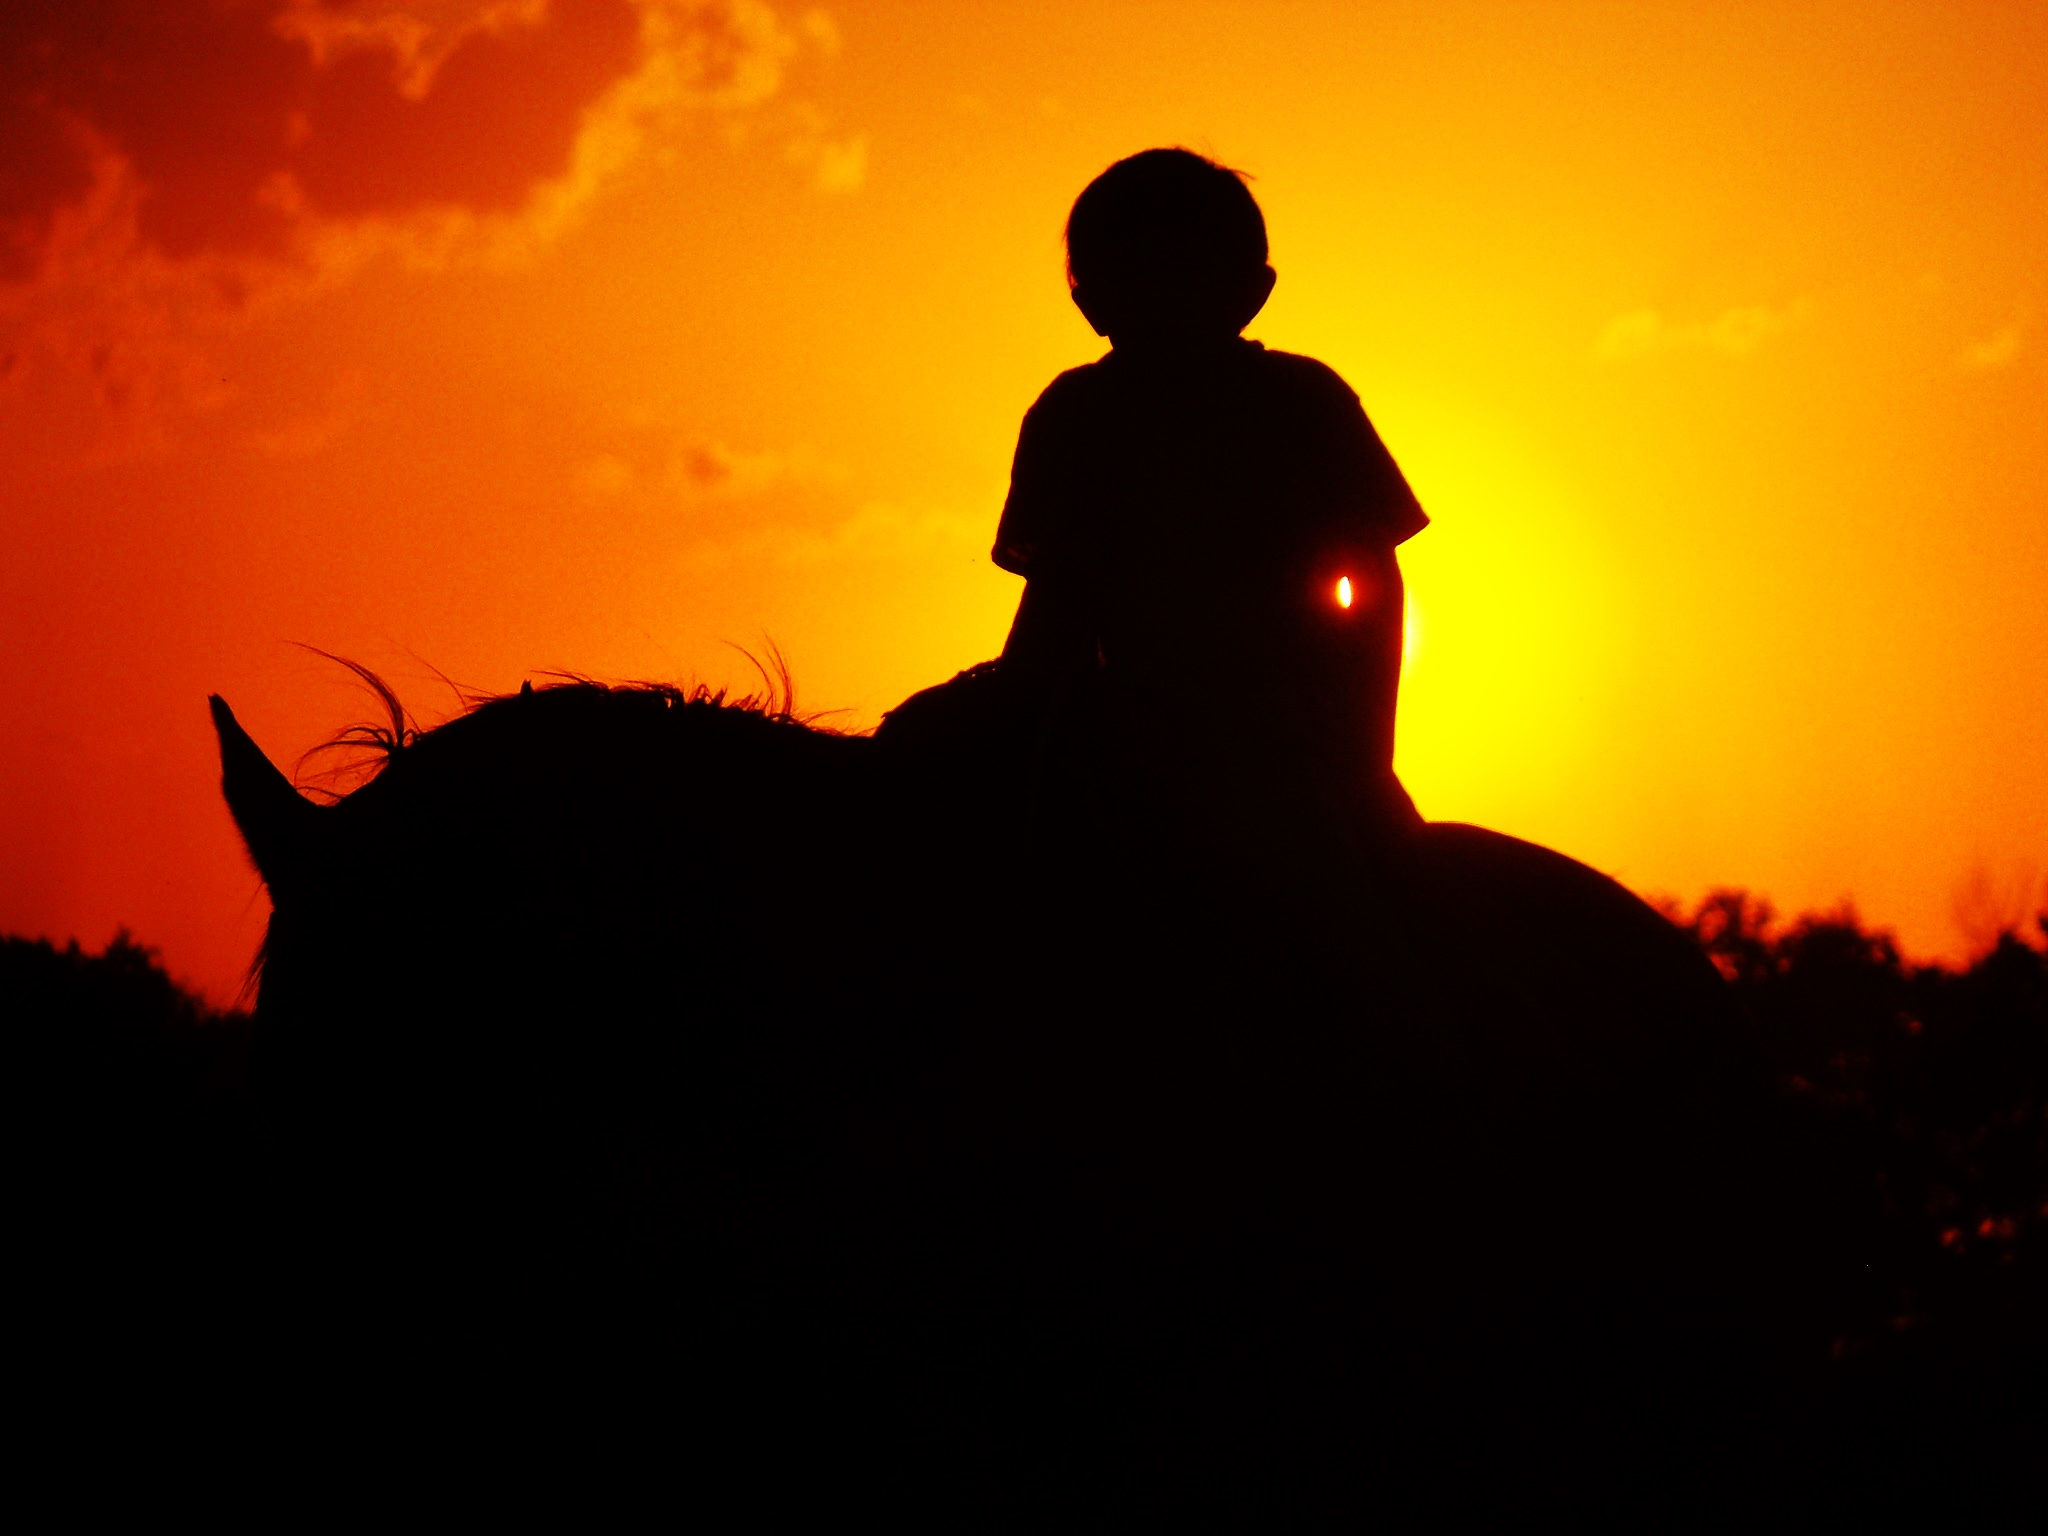 Boy sitting on horse, beautiful sunset in background.